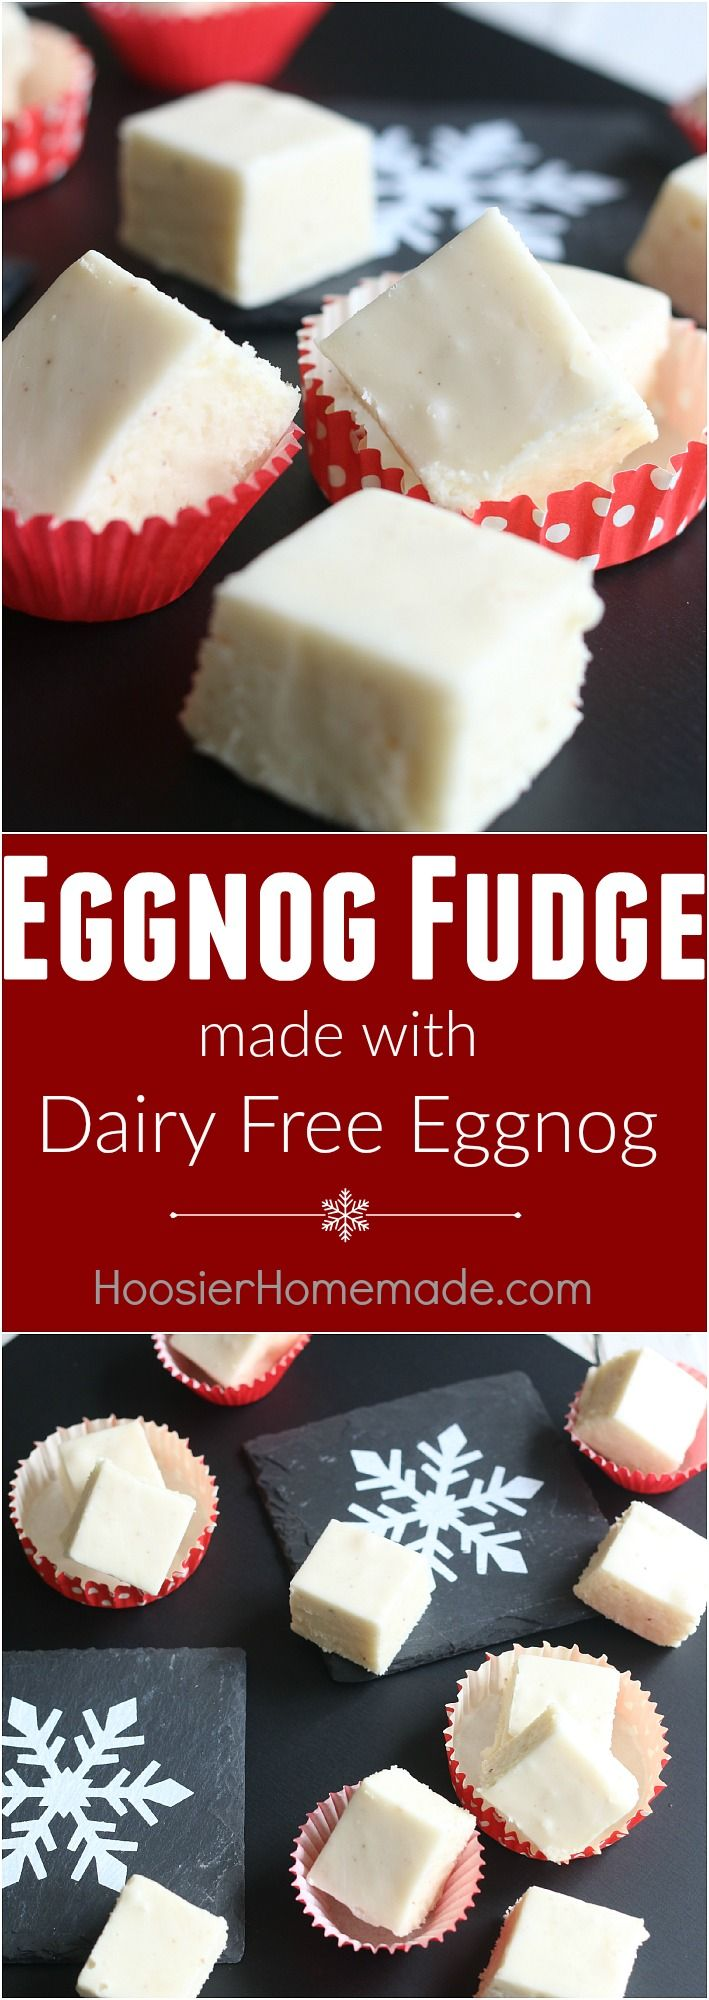 The perfect holiday treat to make and share as gifts - this Eggnog Fudge is EASY to make, goes together quickly AND is made with Dairy FREE Eggnog! Whip up a batch to share with friends, teachers, neighbors, co-workers and more!